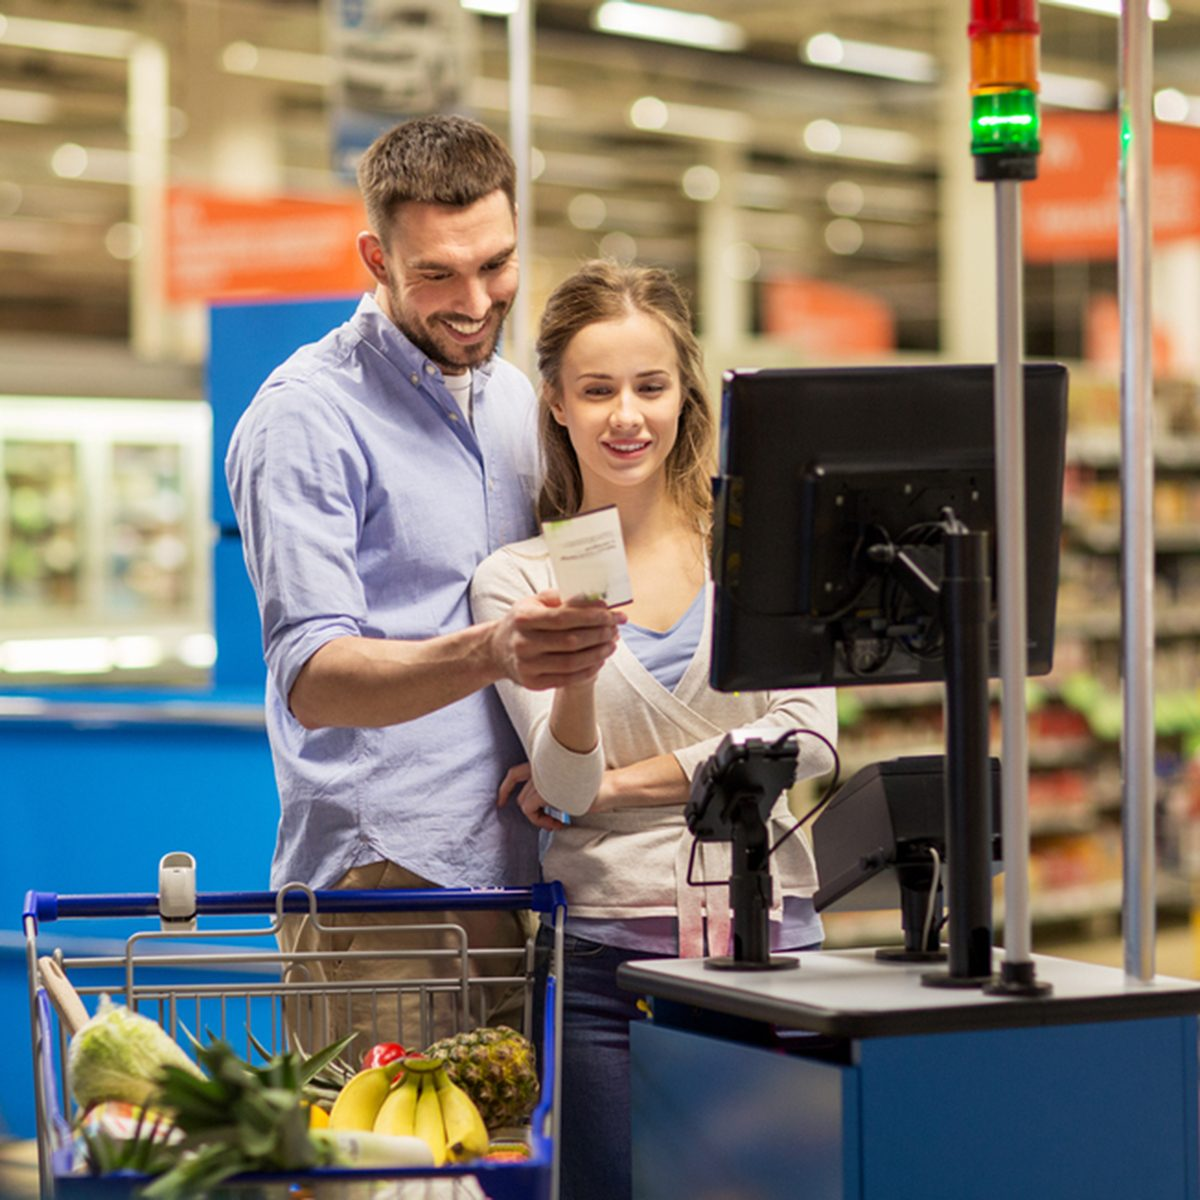 happy couple buying food at grocery store or supermarket self-service cash register